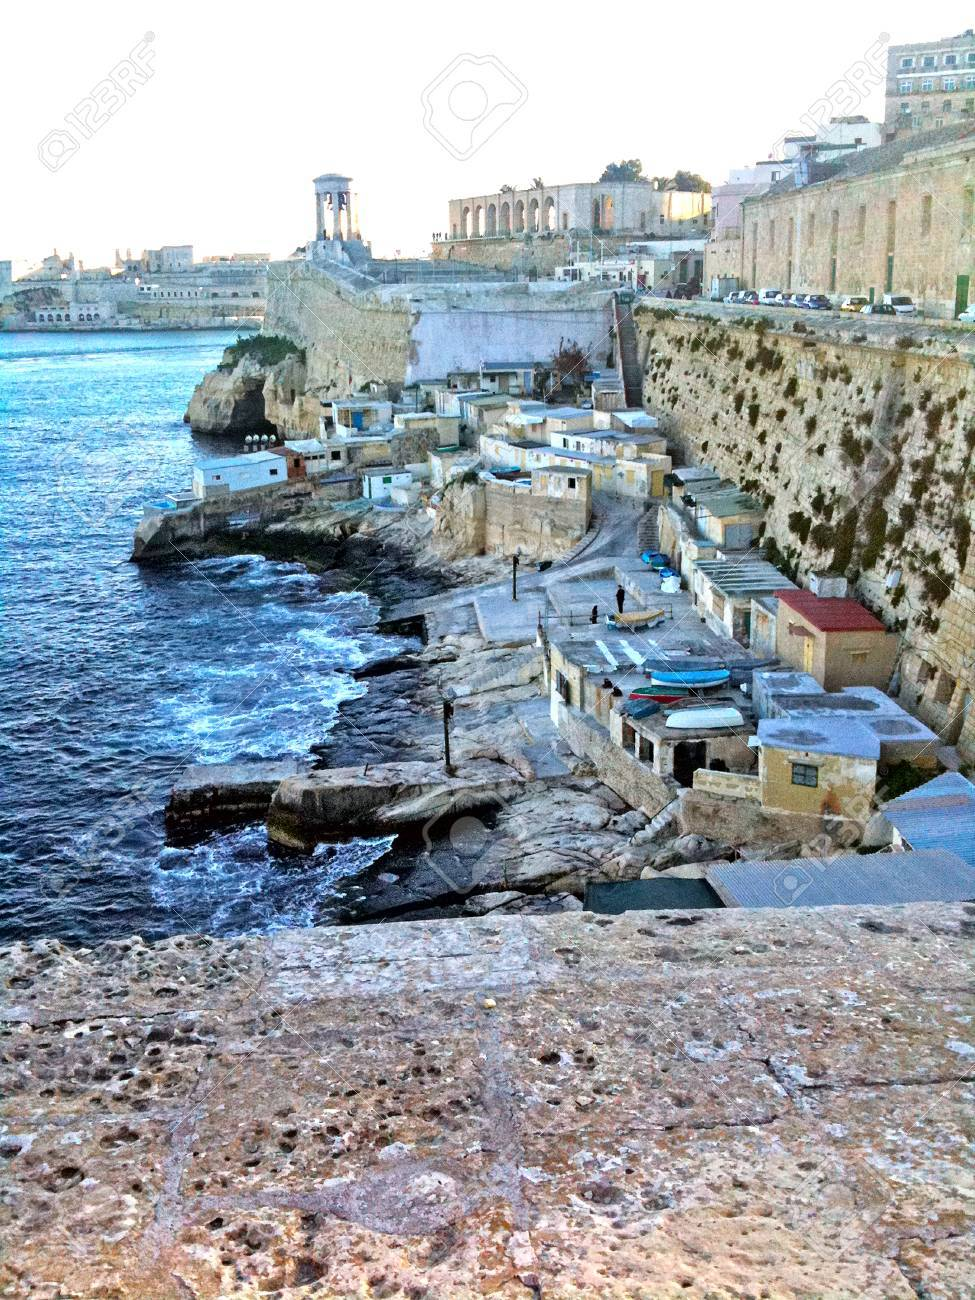 A small fishing town nestled in a natural harbor somewhere in Malta - 34392176